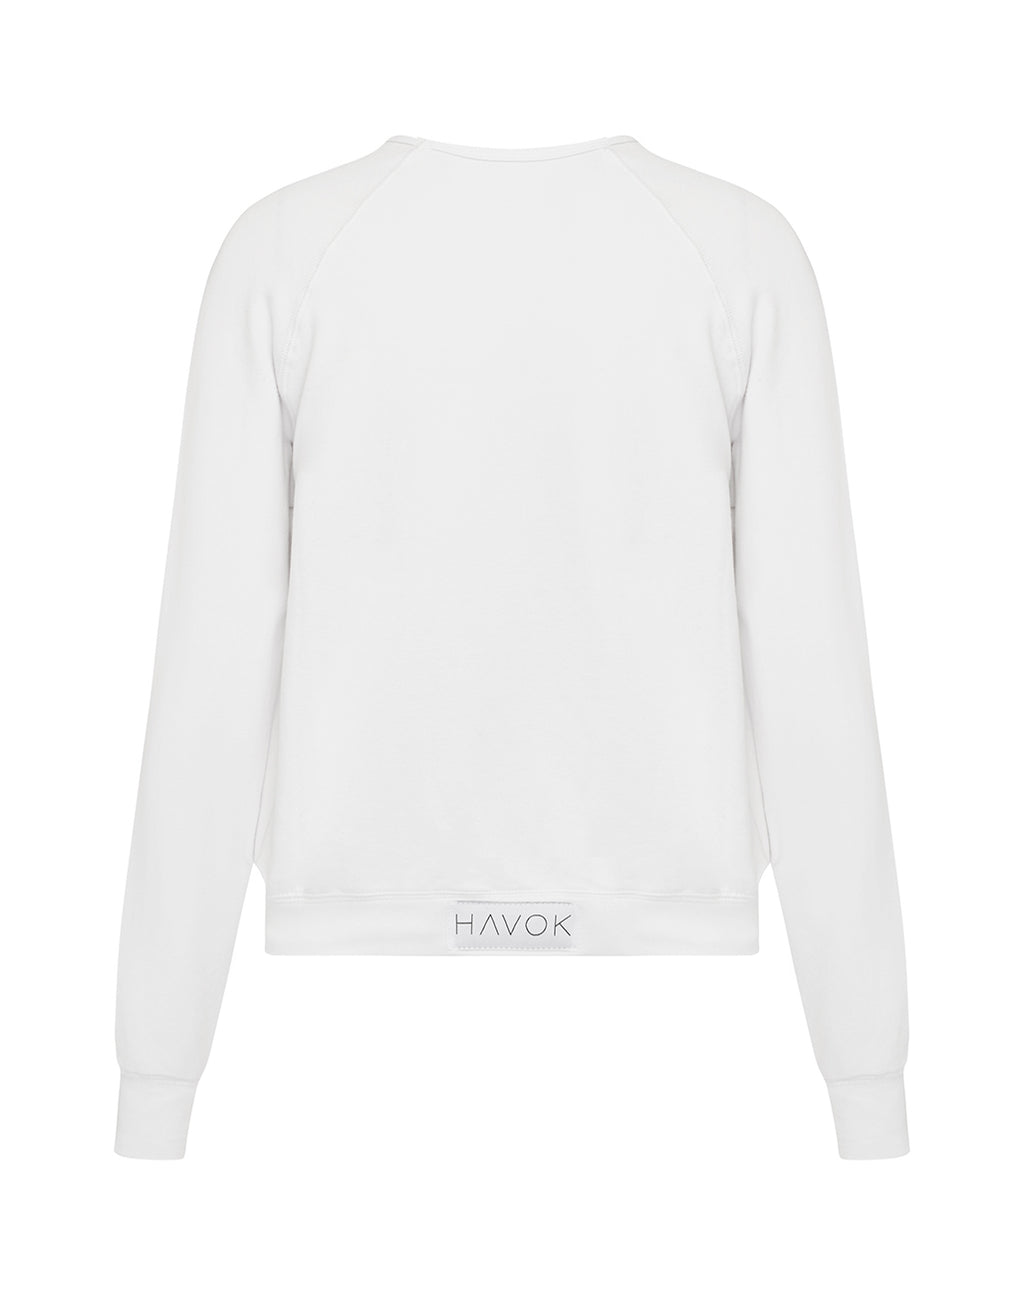 SCRIPT SWEATSHIRT - Havok Athletic